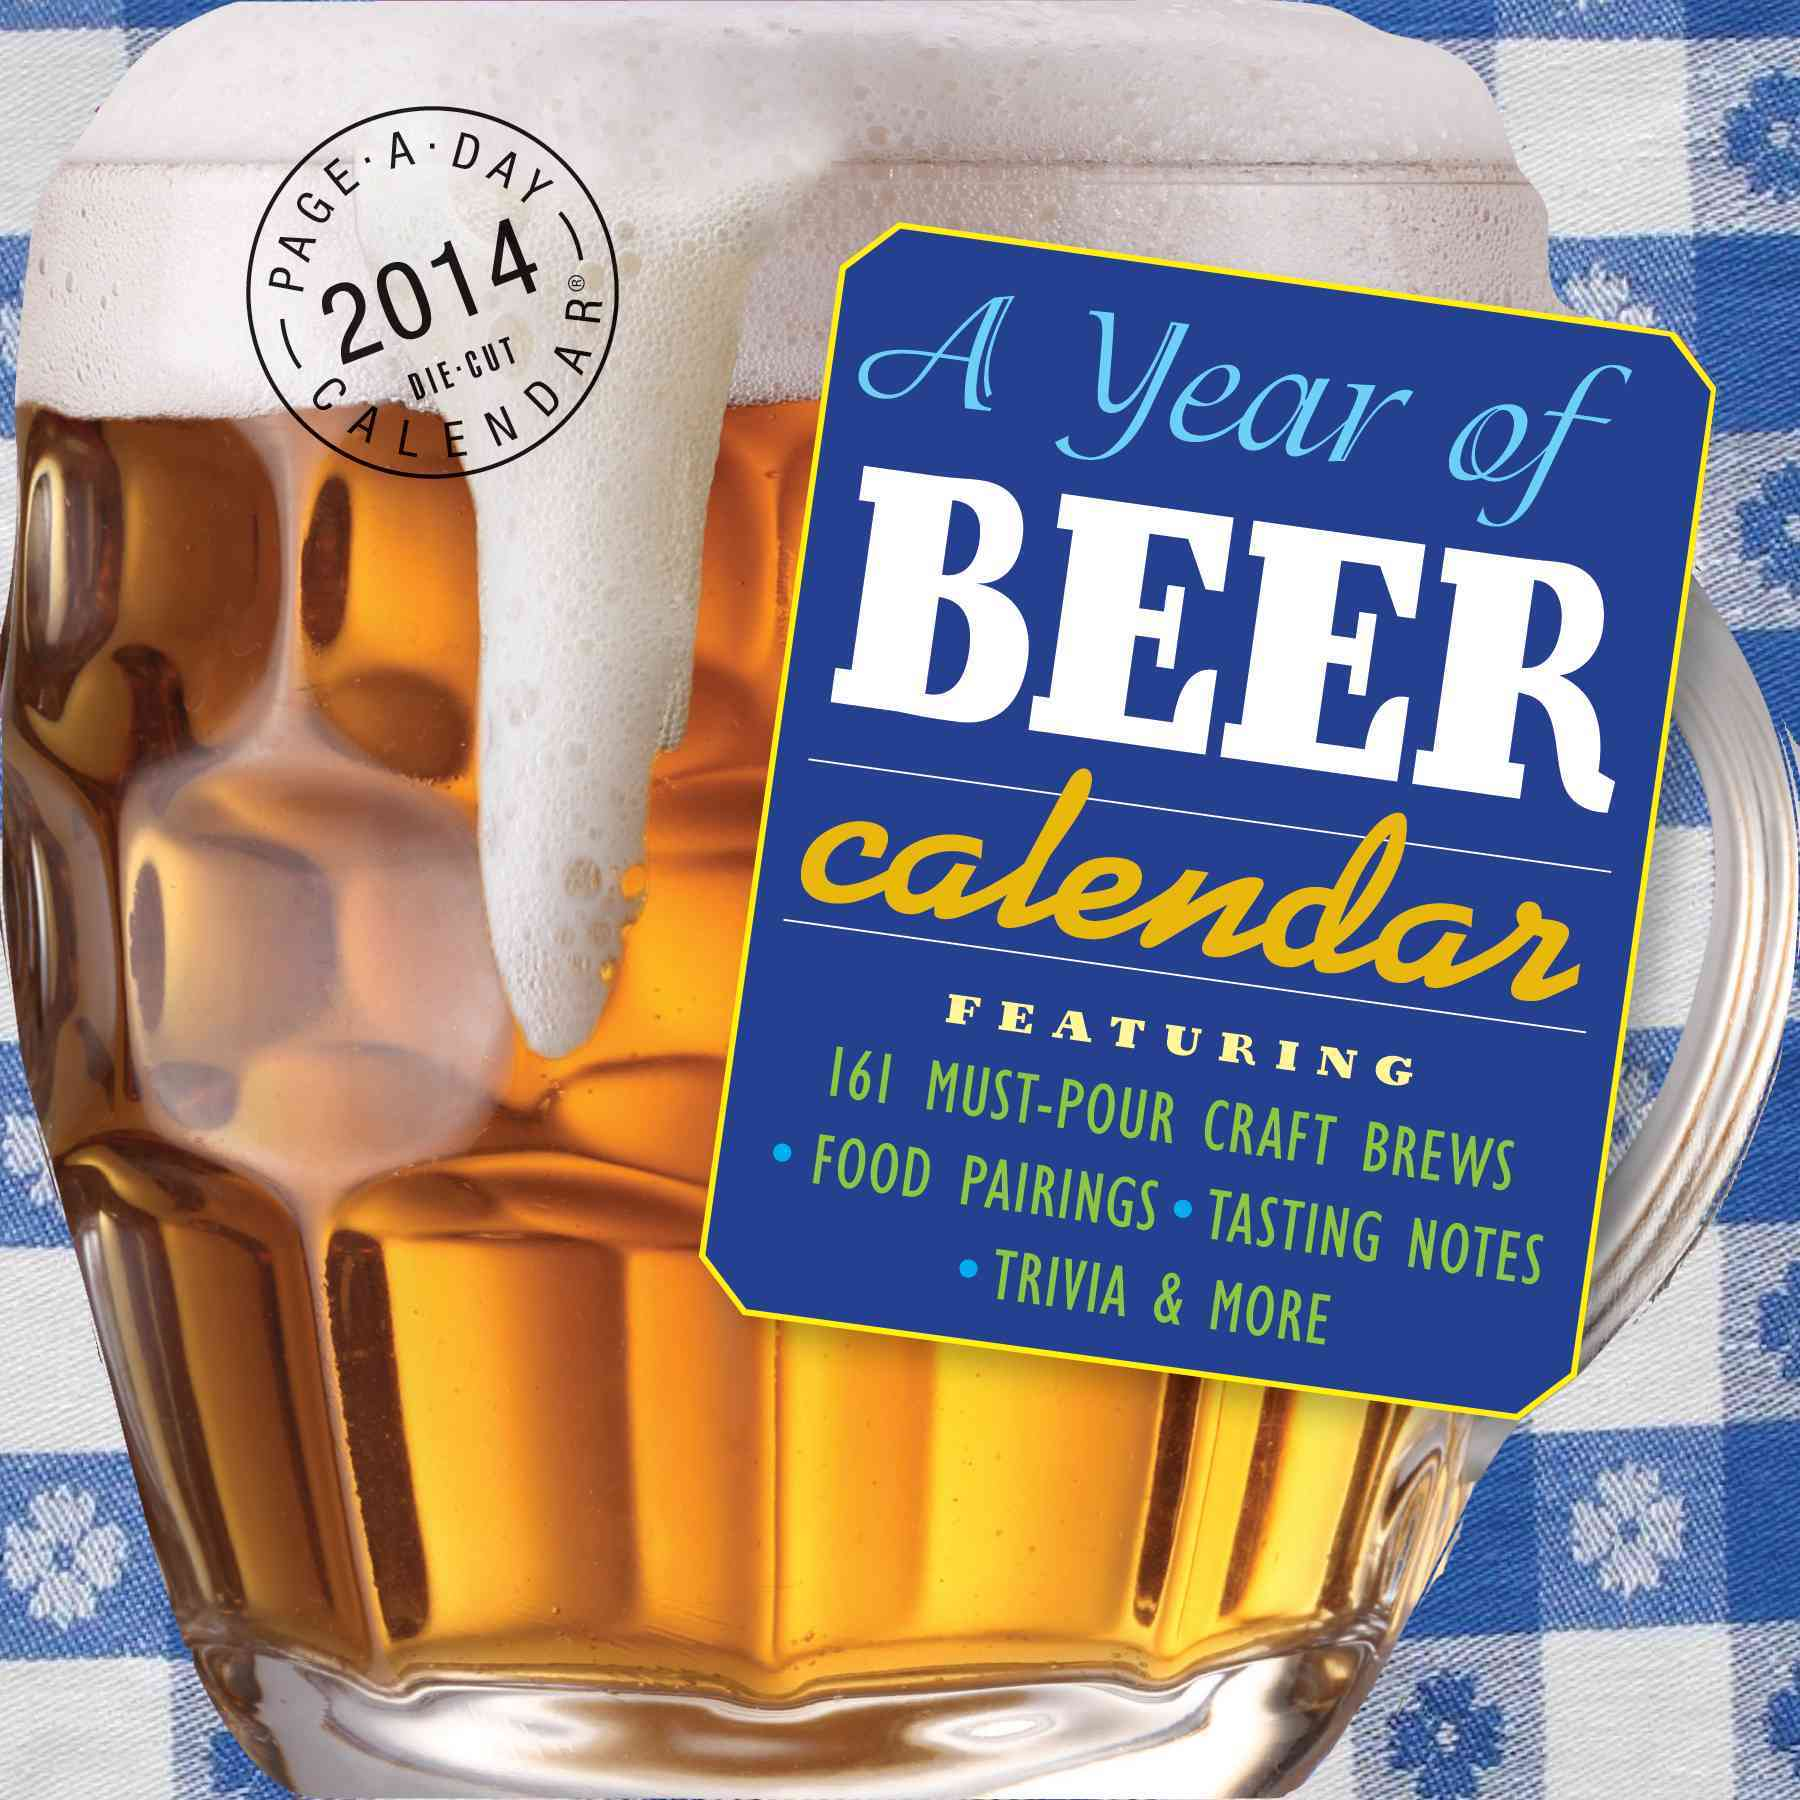 A Year of Beer 2014 Calendar (Calendar)